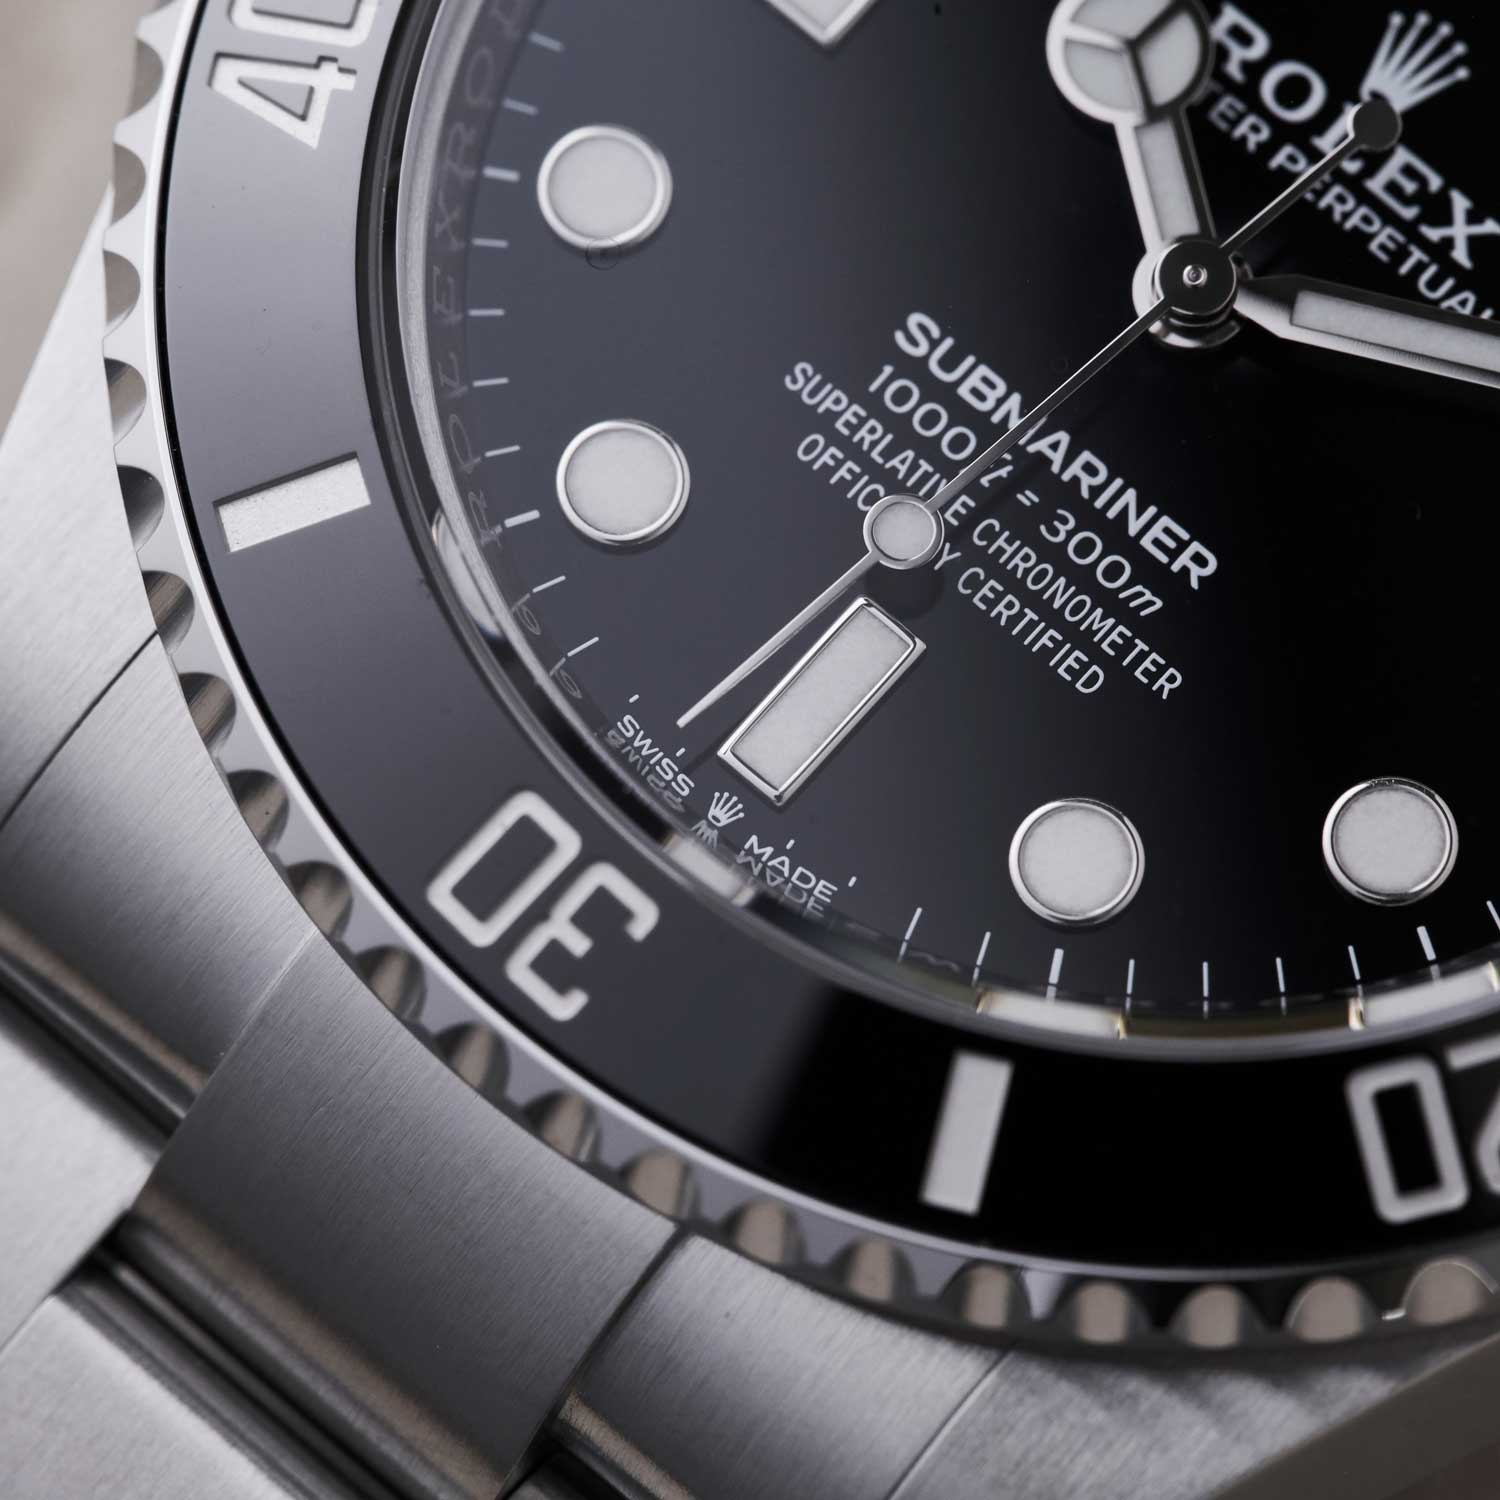 "Since 2018, Rolex has demarcated all of their Superlative Chronometer rated watches with a new coronet printed between the words ""Swiss Made"" at 6 o'clock; this now also appears on the dial of the 2020 family of Submariner watches (©Revolution)"